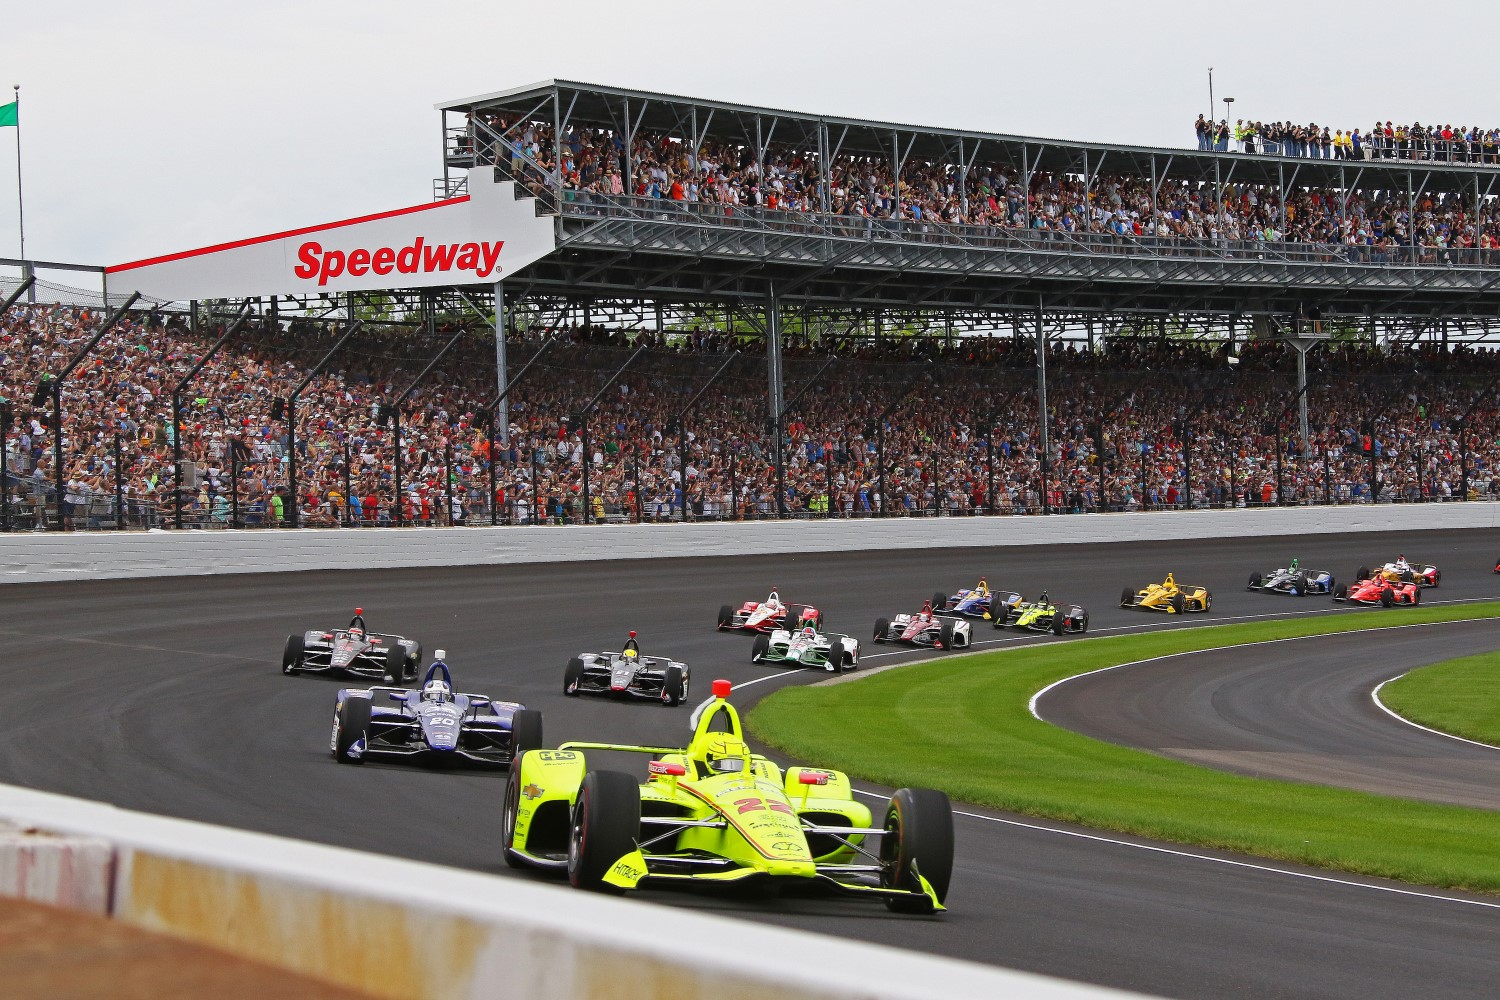 Last year Simon Pagenaud beat Alexander Rossi in a shootout to win.